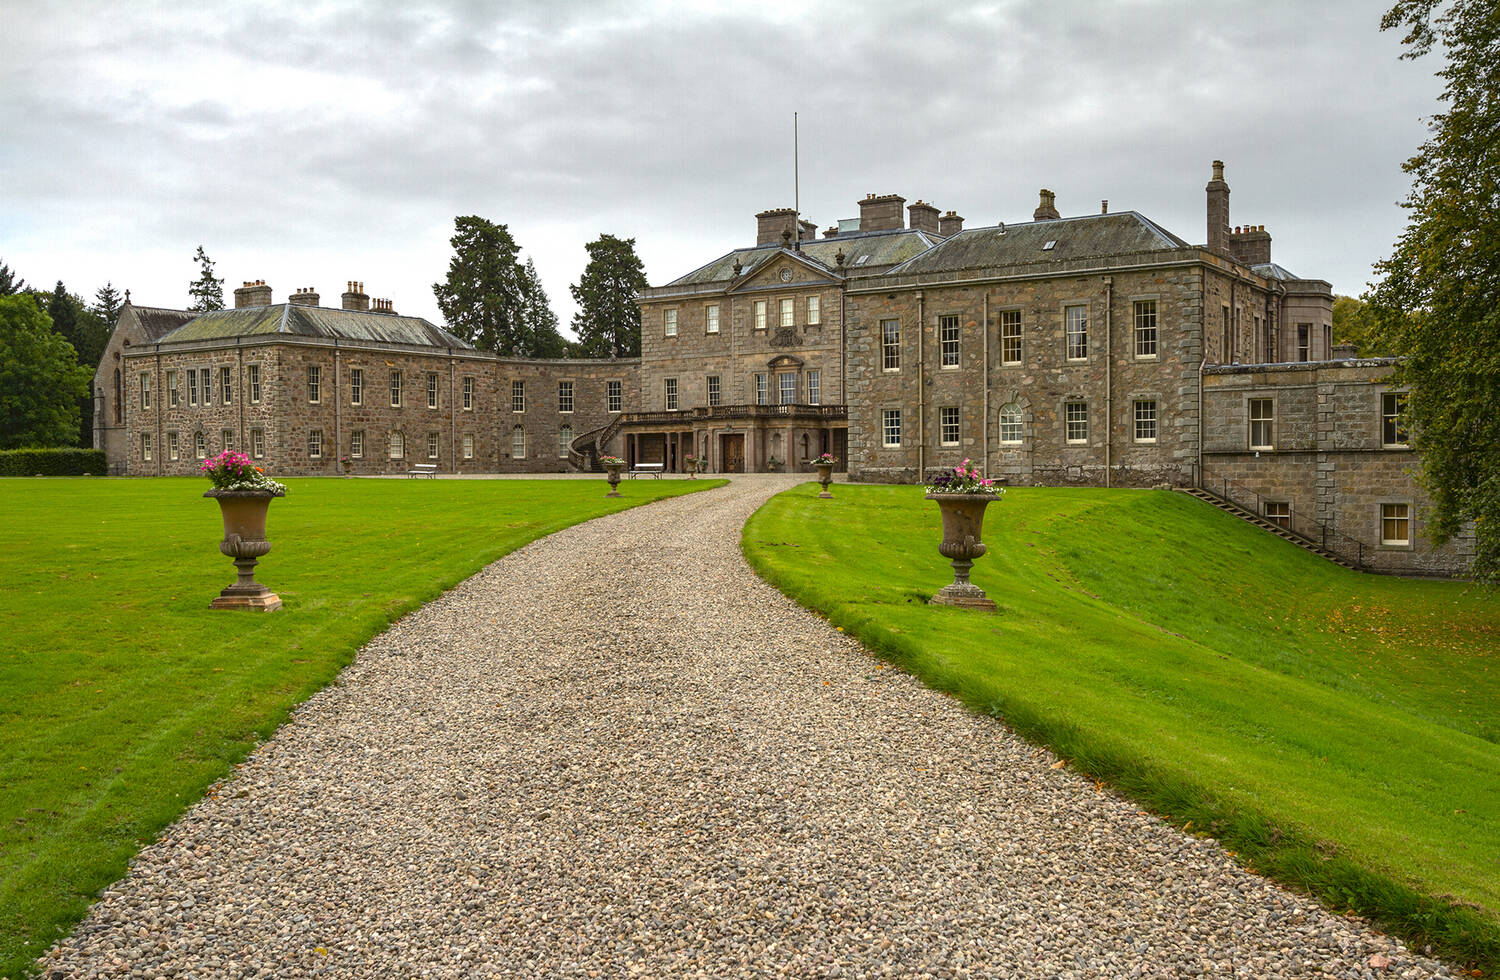 A gravel driveway leading to a grand Palladian mansion, Haddo House. Large stone urns with pink flowers in them stand either side of the driveway on immaculate green lawns.